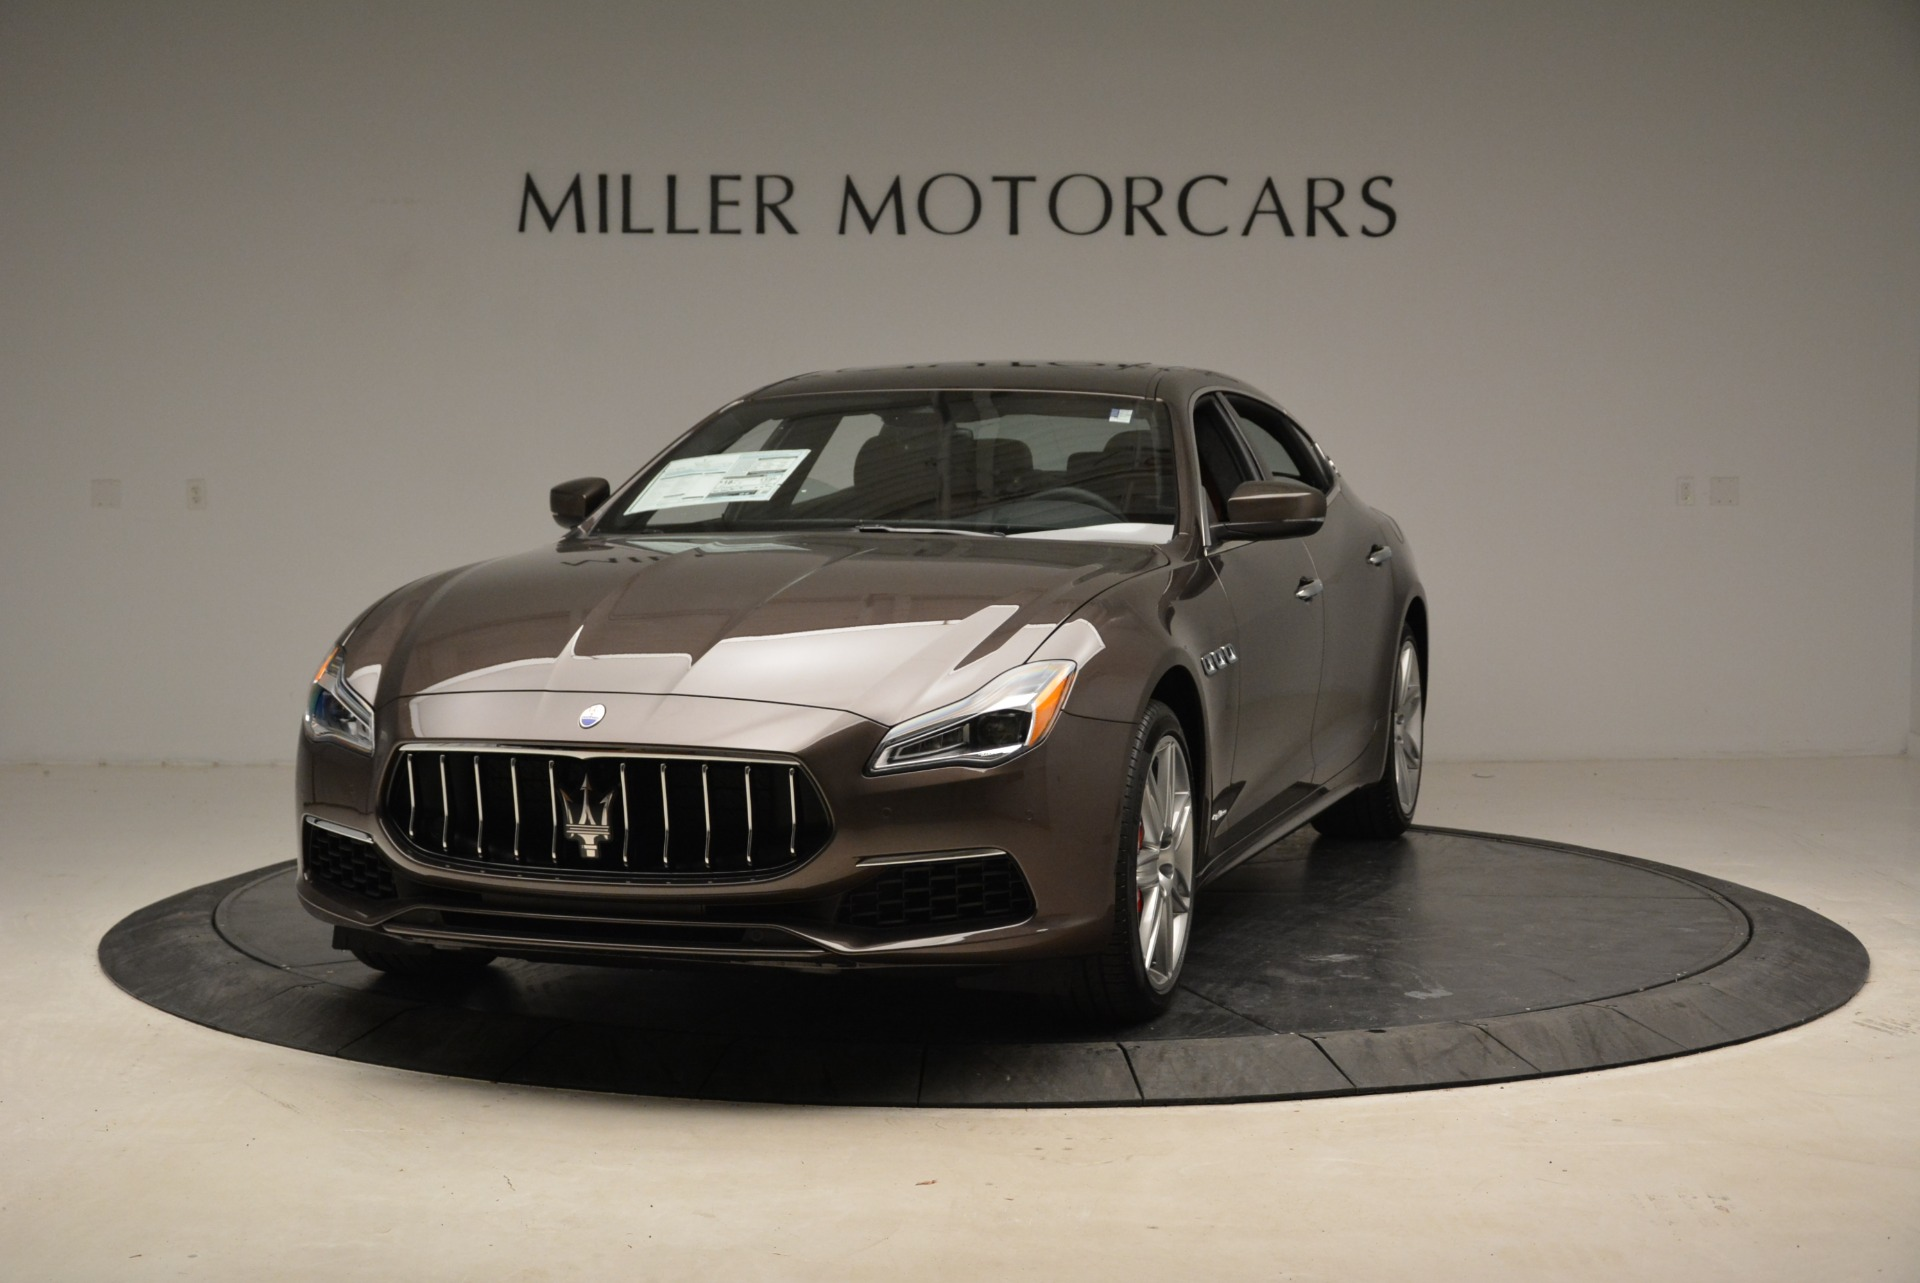 New 2018 Maserati Quattroporte S Q4 GranLusso For Sale In Greenwich, CT